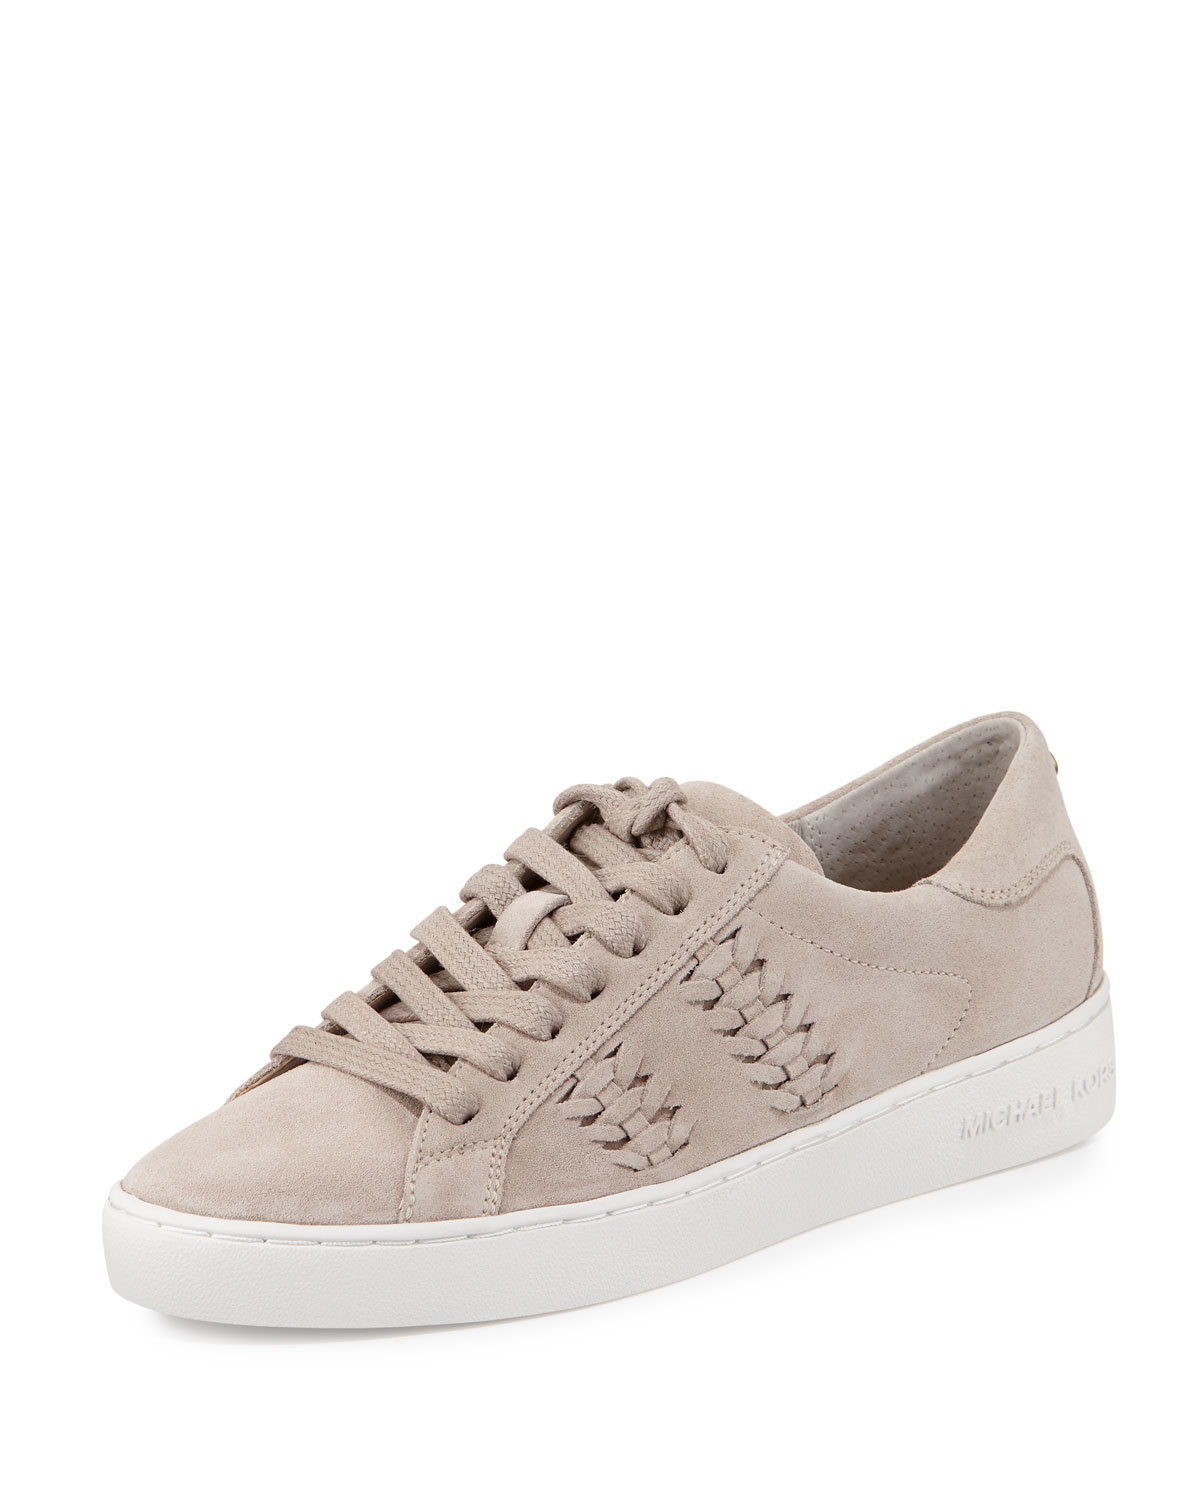 michael michael kors stevie woven suede low top sneaker in gray lyst. Black Bedroom Furniture Sets. Home Design Ideas